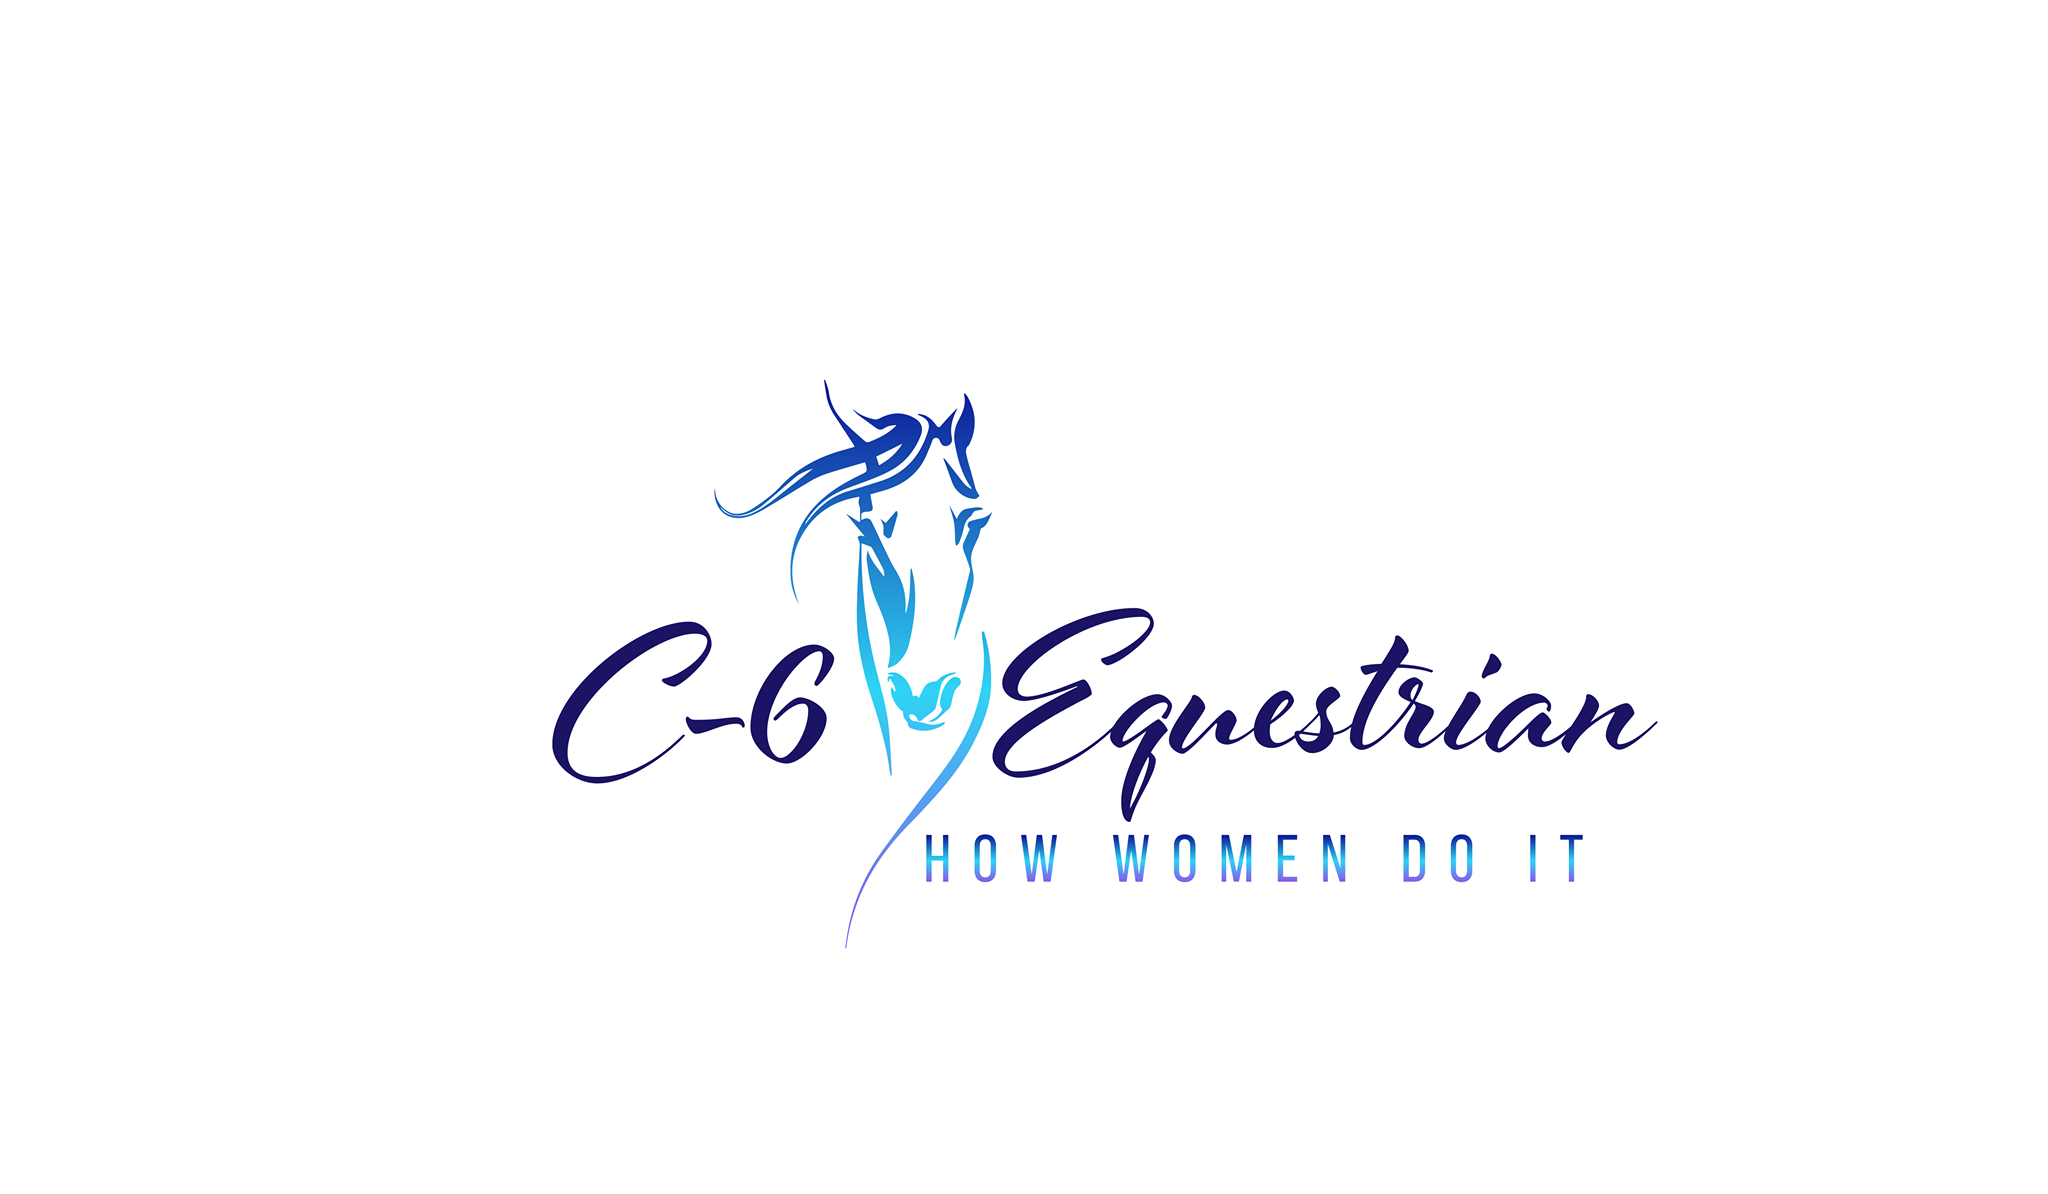 C-6 Equestrian Needs to Present Riders 'How Girls Do It' with New Symposium Collection  C-6 Equestrian Needs to Present Riders 'How Girls Do It' with New Symposium Collection C6 Equestrian